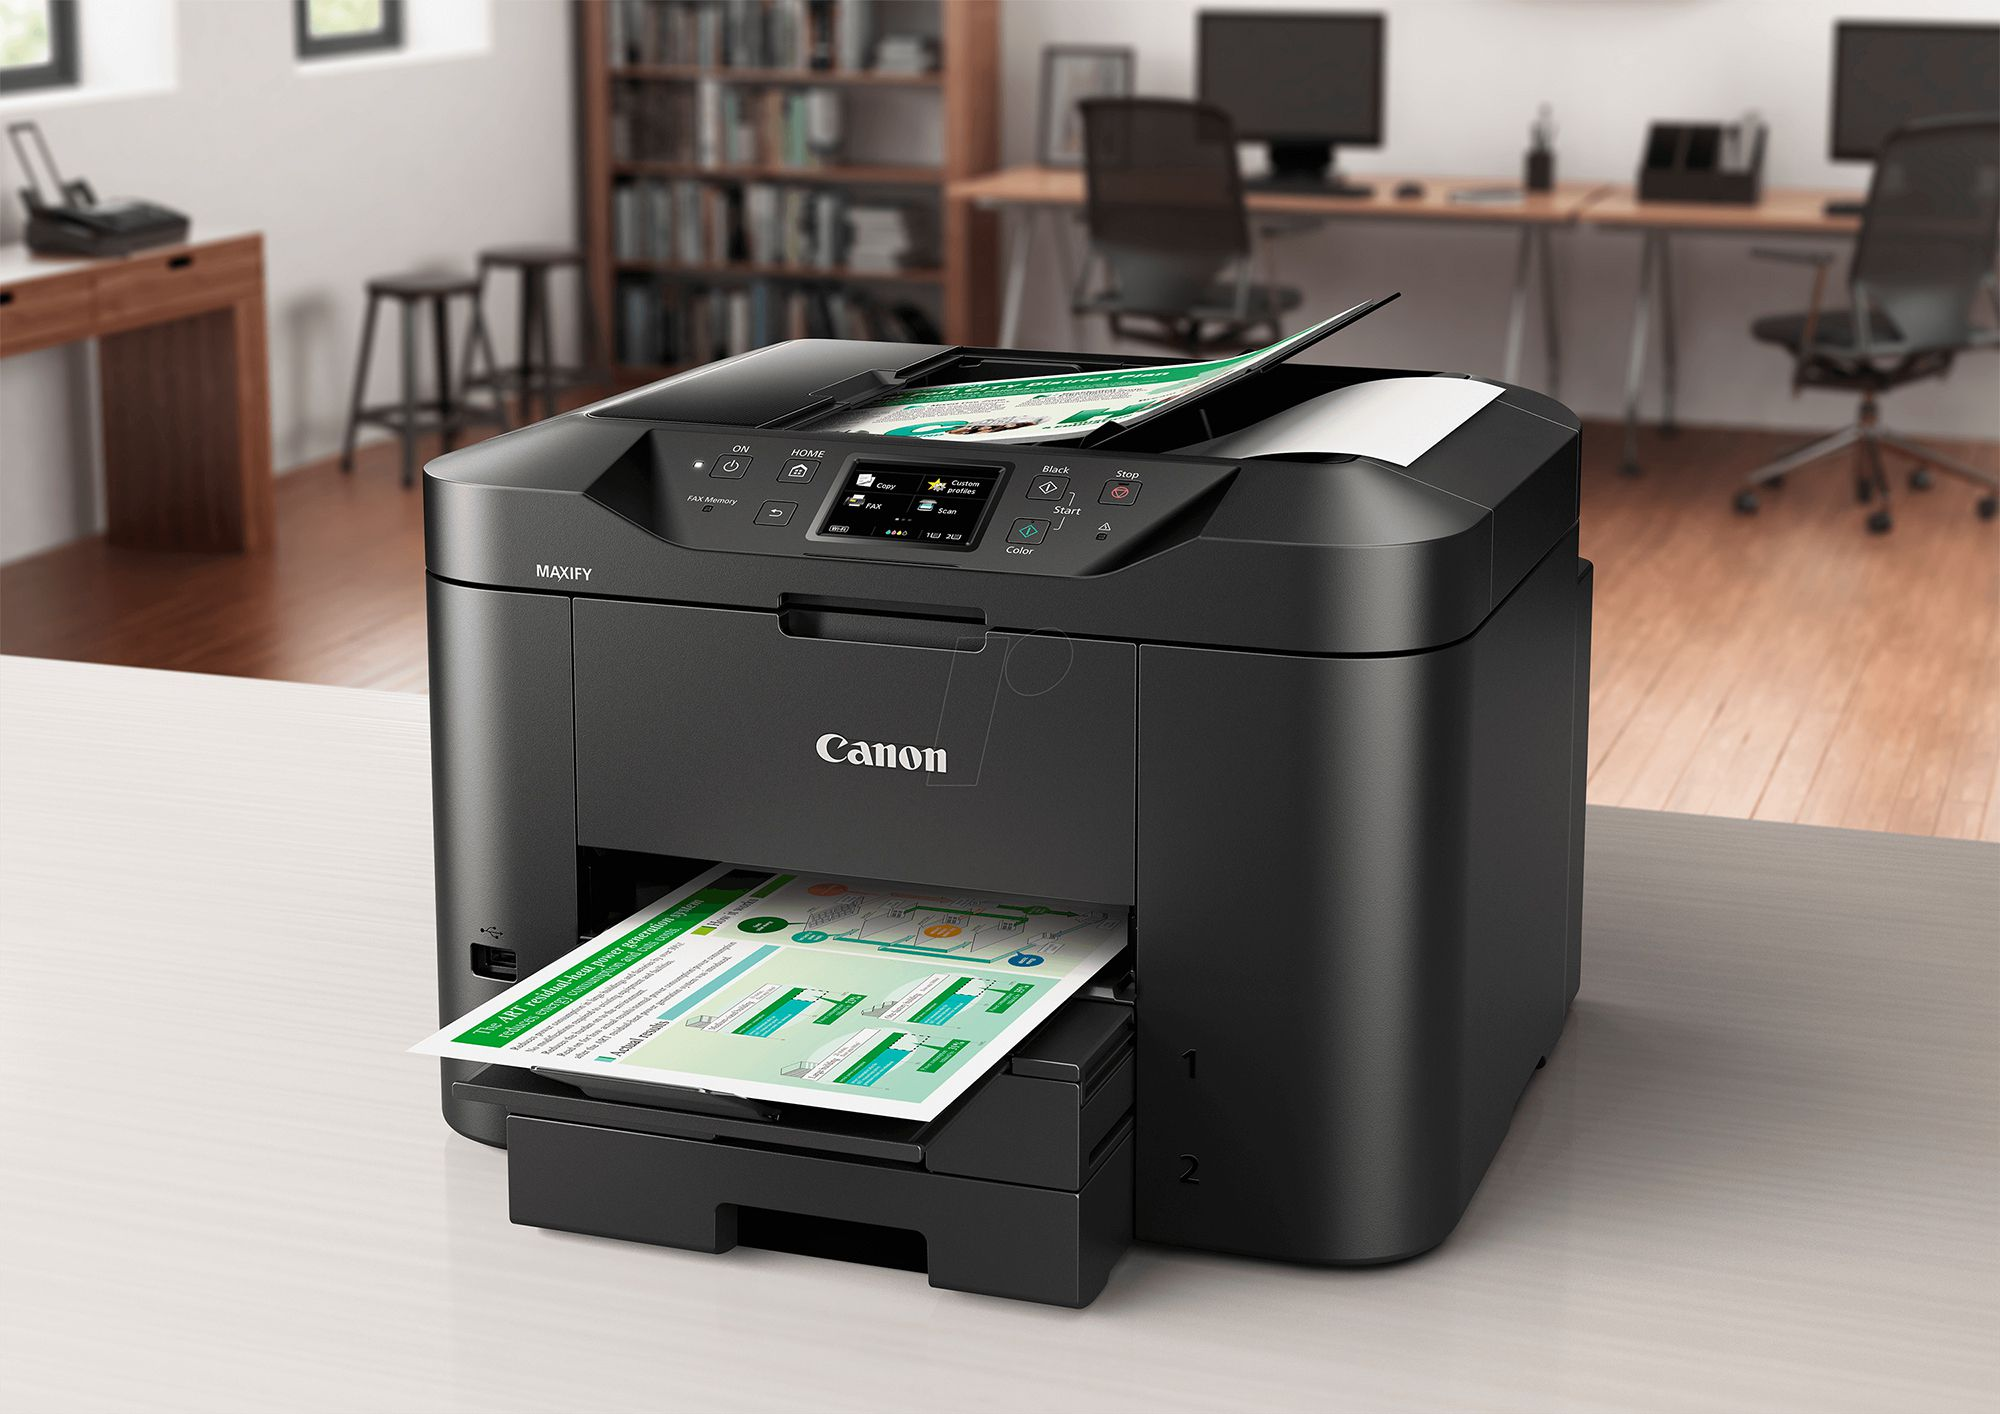 canon maxify mb2720 wireless home office inkjet printer